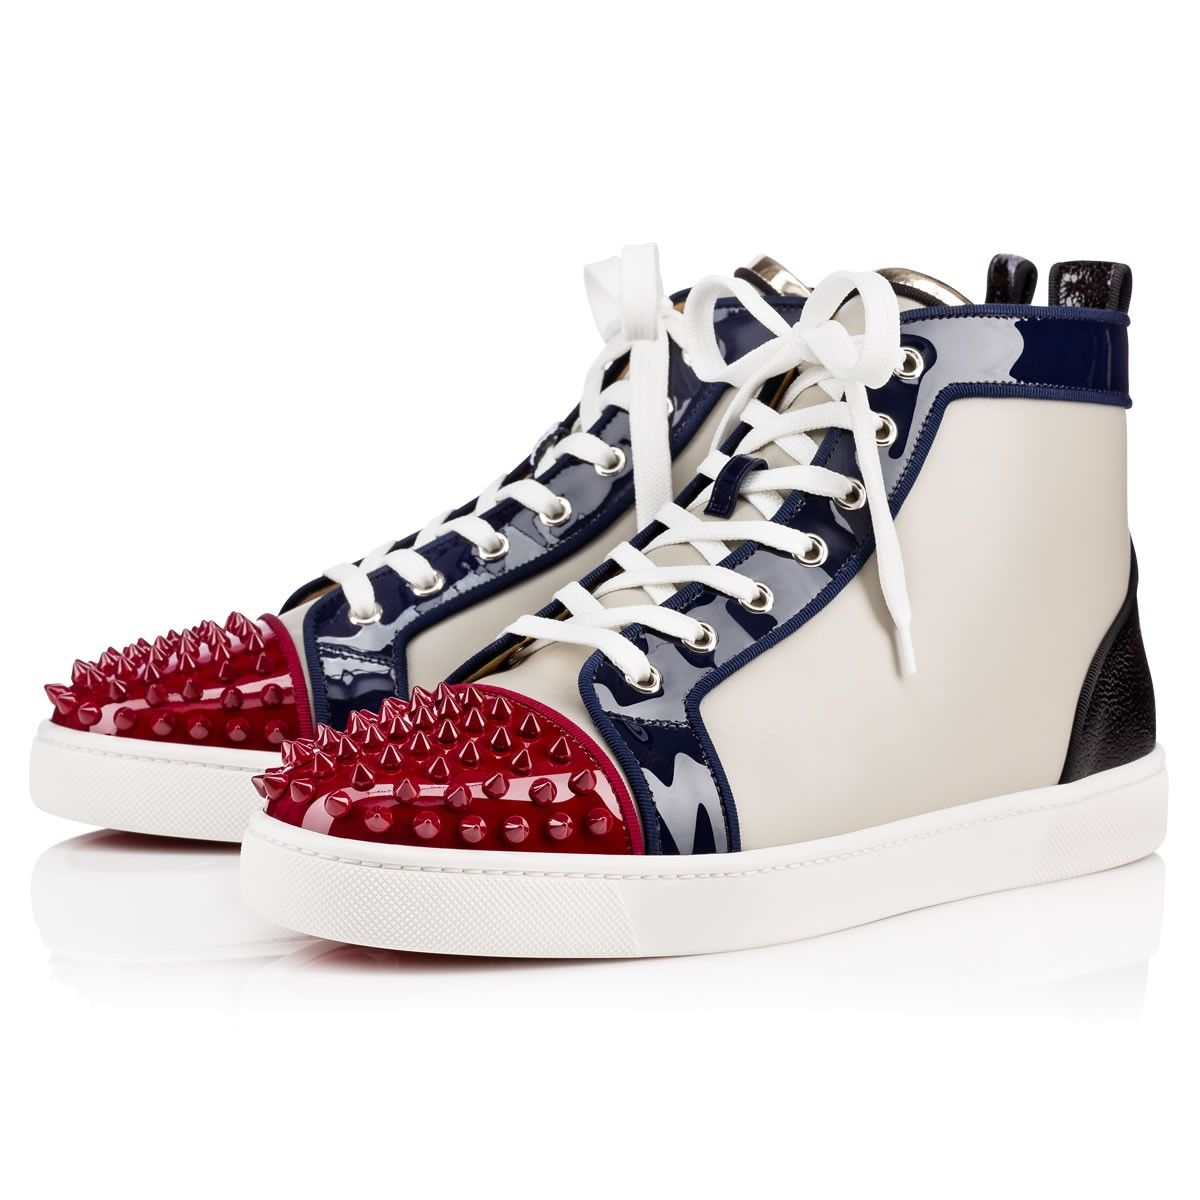 reputable site 678d5 dd129 CHRISTIAN LOUBOUTIN Lou Spikes Patent/Calf Caviar Multicolor ...